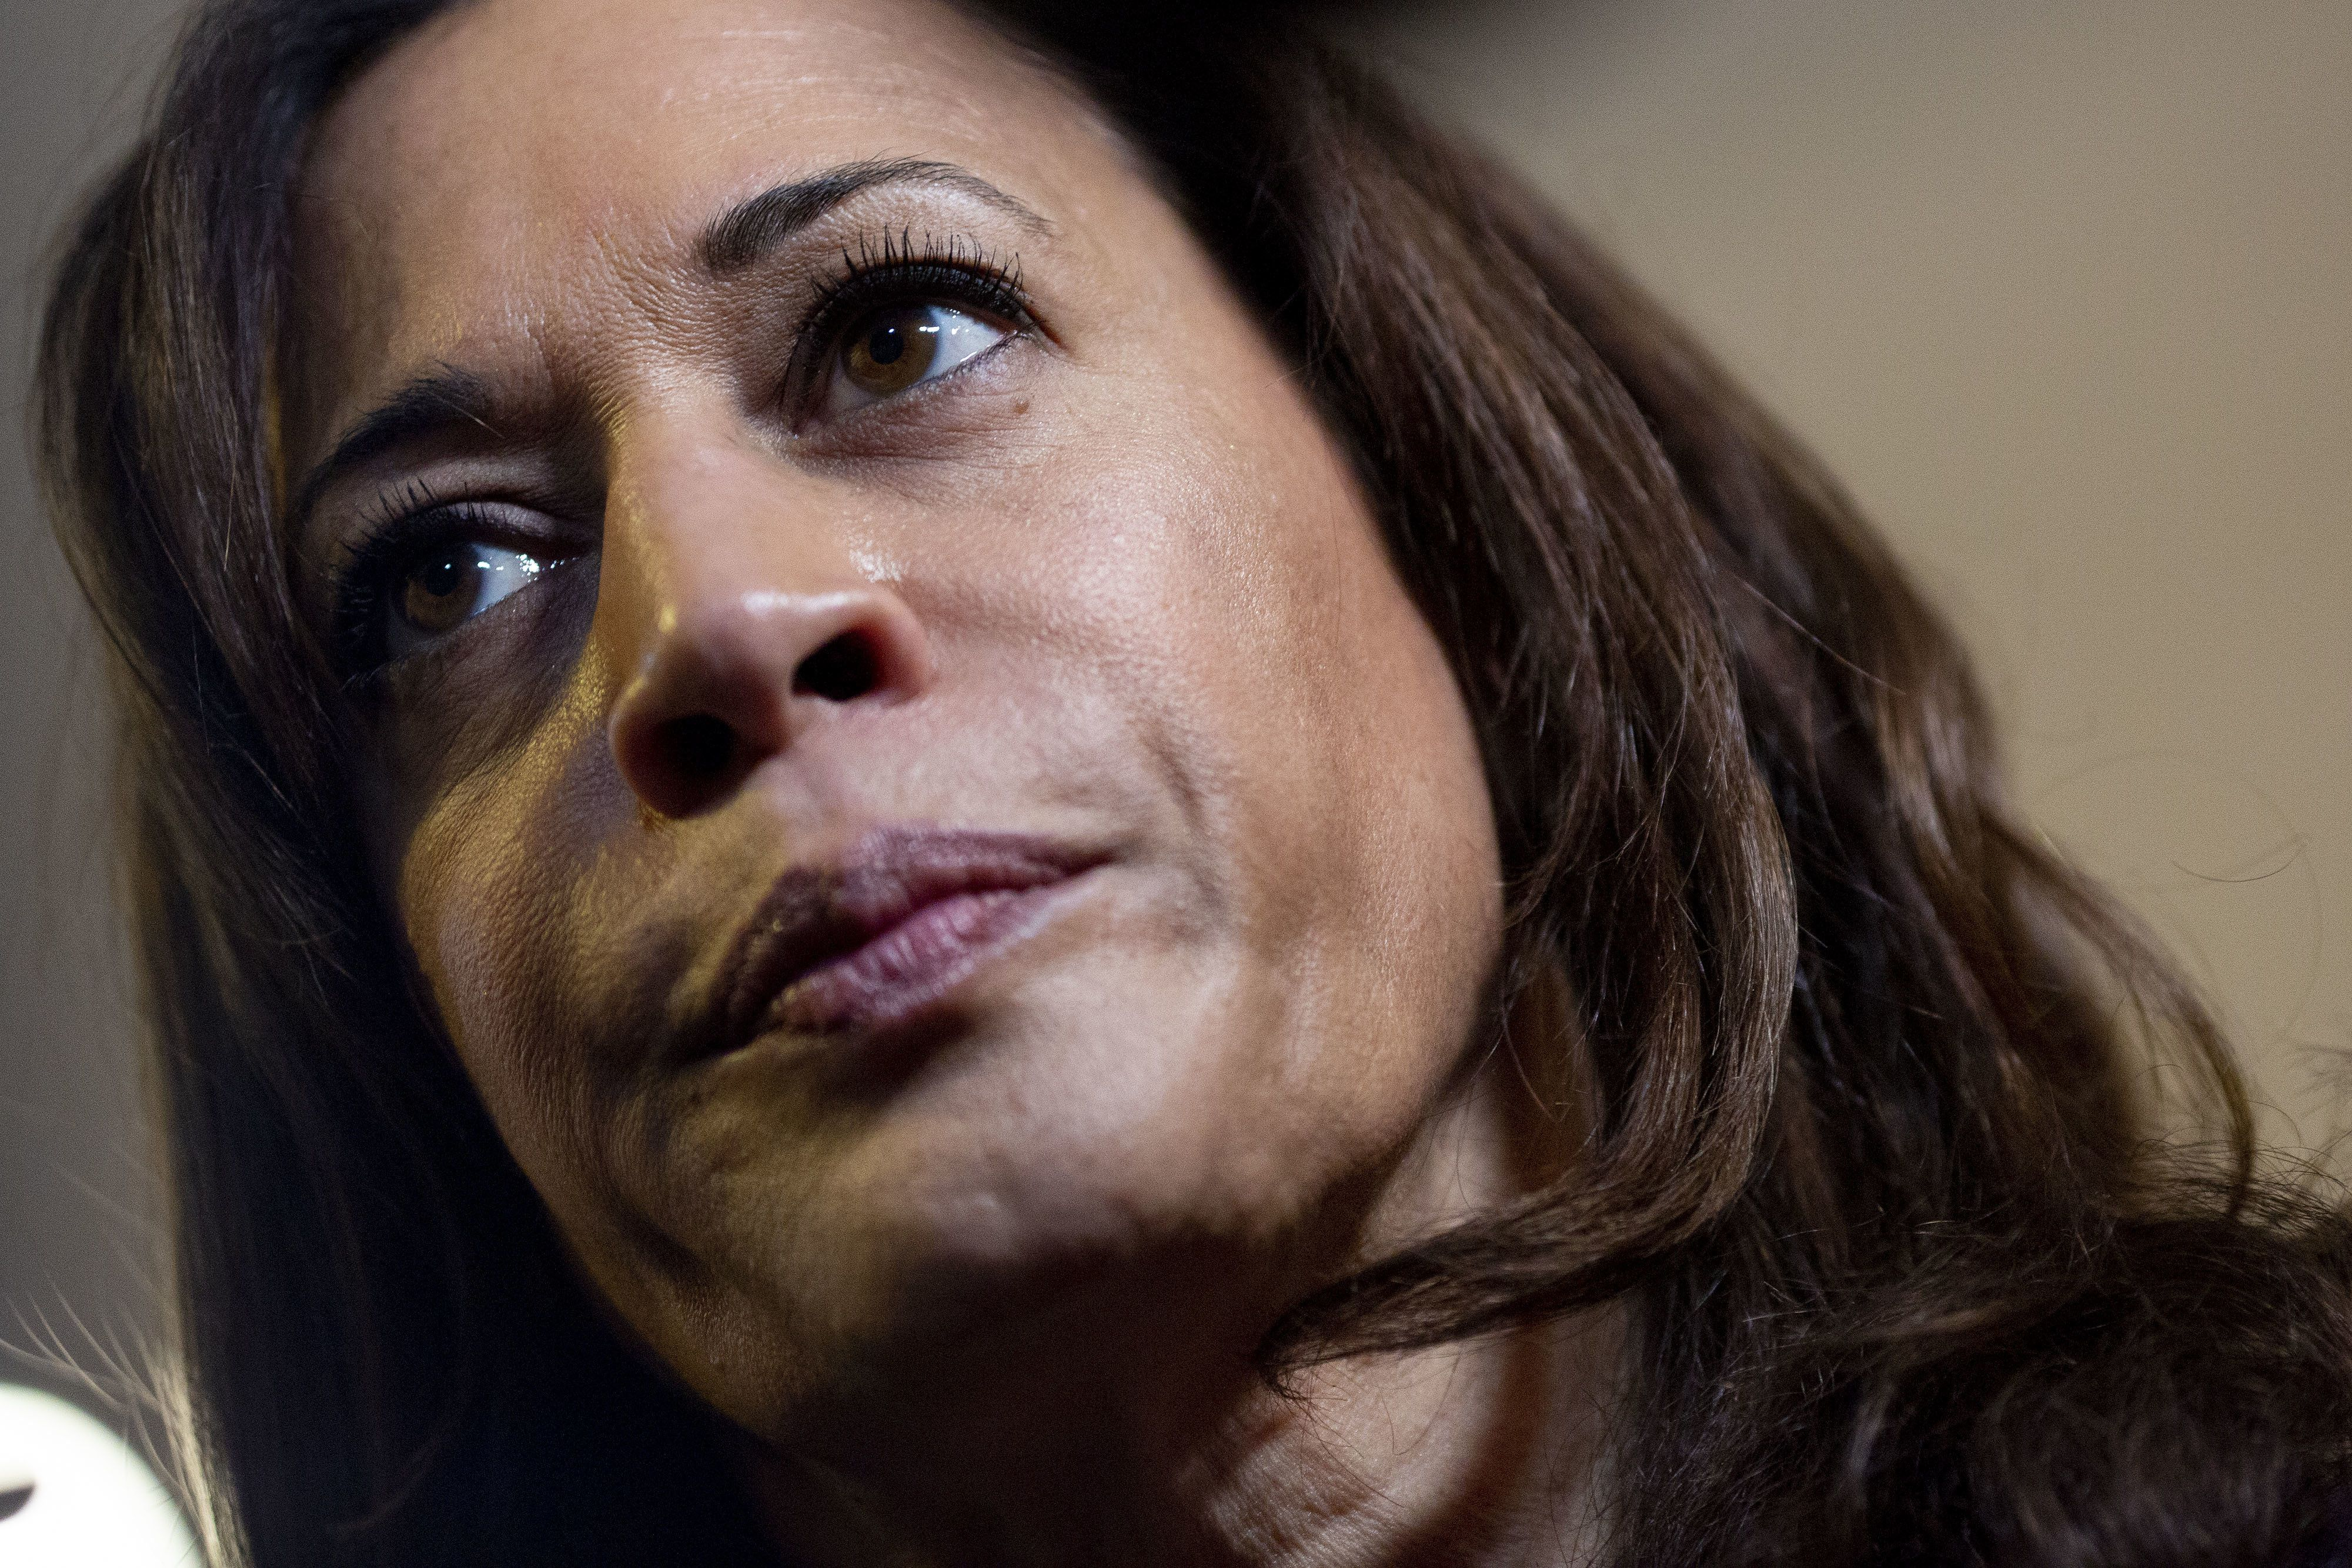 Senator Kamala Harris, a Democrat from California and 2020 presidential candidate, speaks to members of the media during a campaign event at a private residence in Des Moines, Iowa, U.S., on Thursday, April 11, 2019. Harris has said she raised $12 million from more than 218,000 individual contributions. Photographer: Daniel Acker/Bloomberg via Getty Images